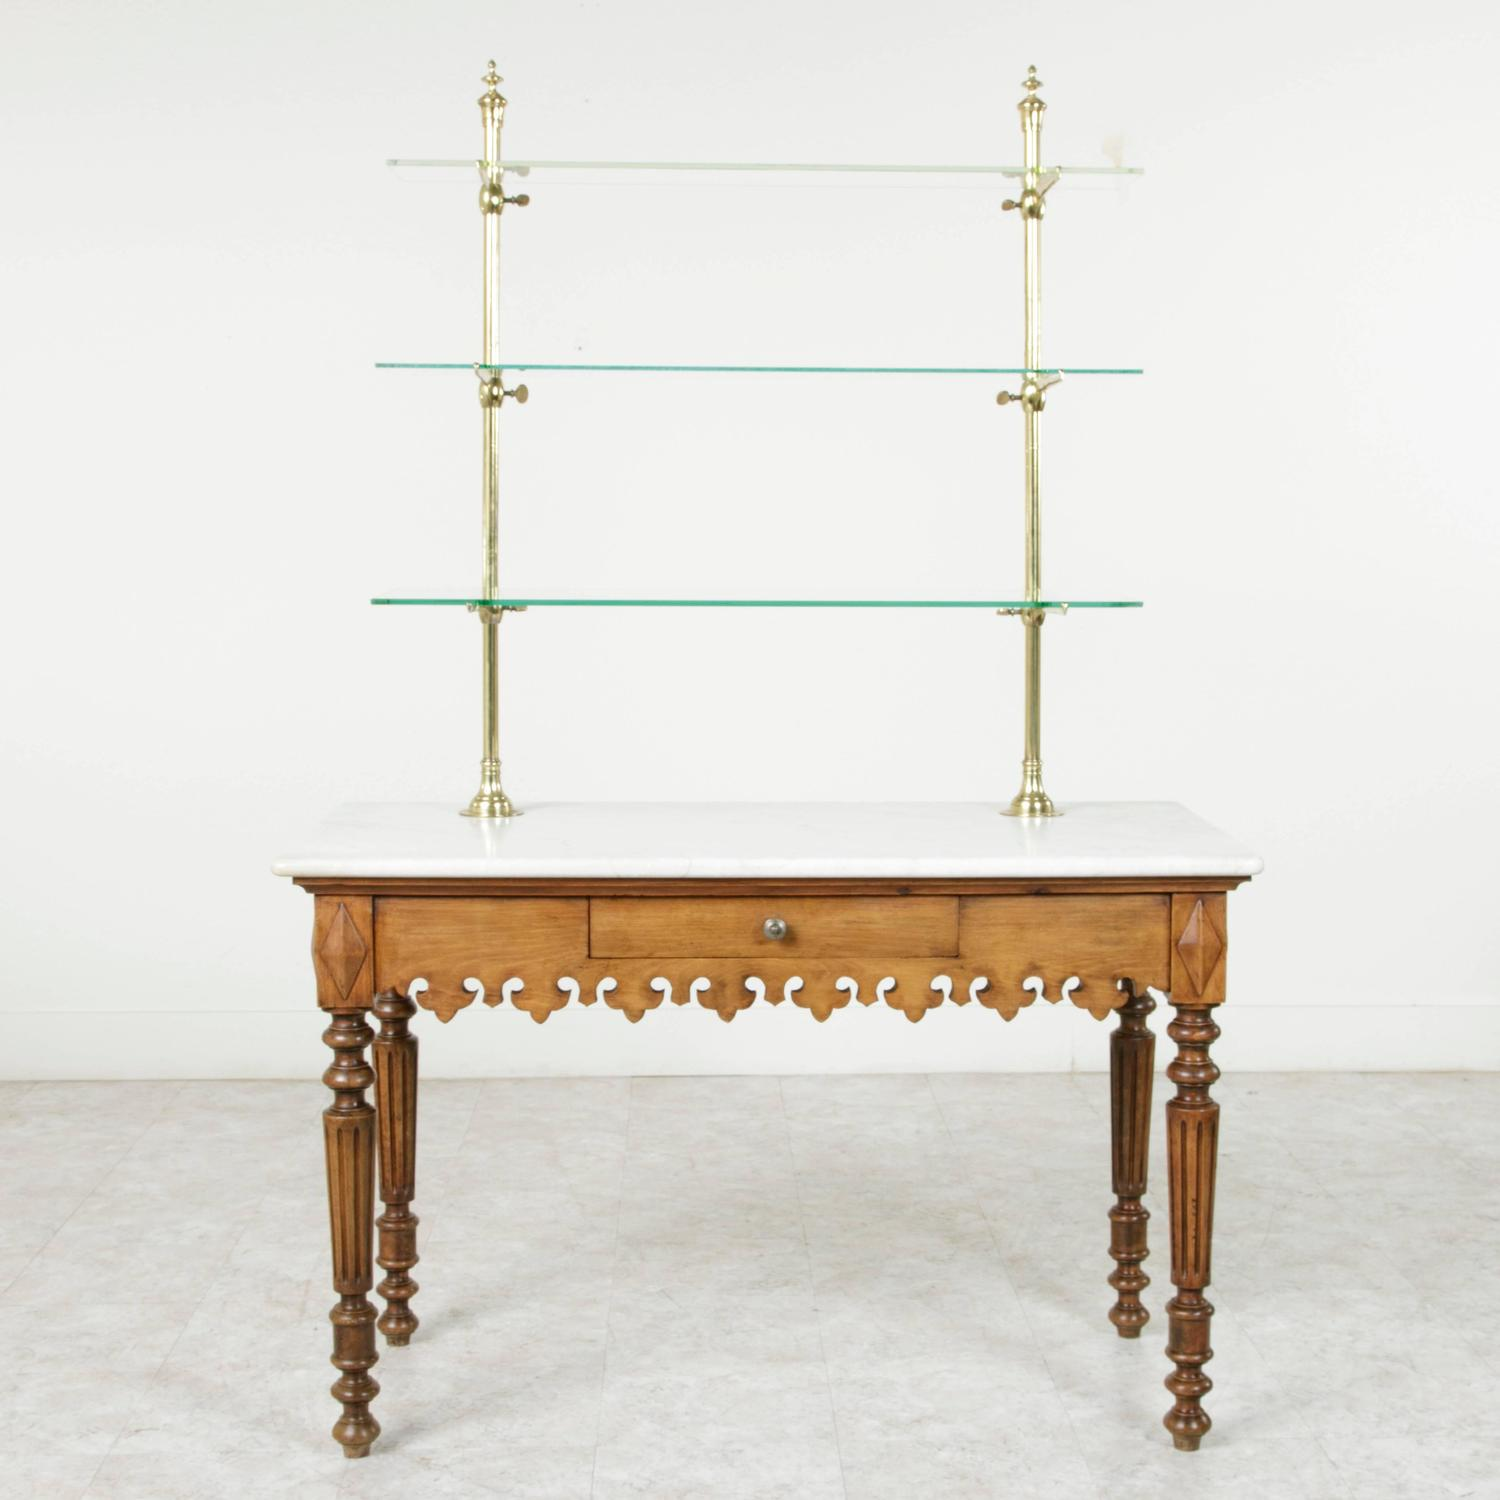 Antique Marble Top Pastry Table With Bronze Display